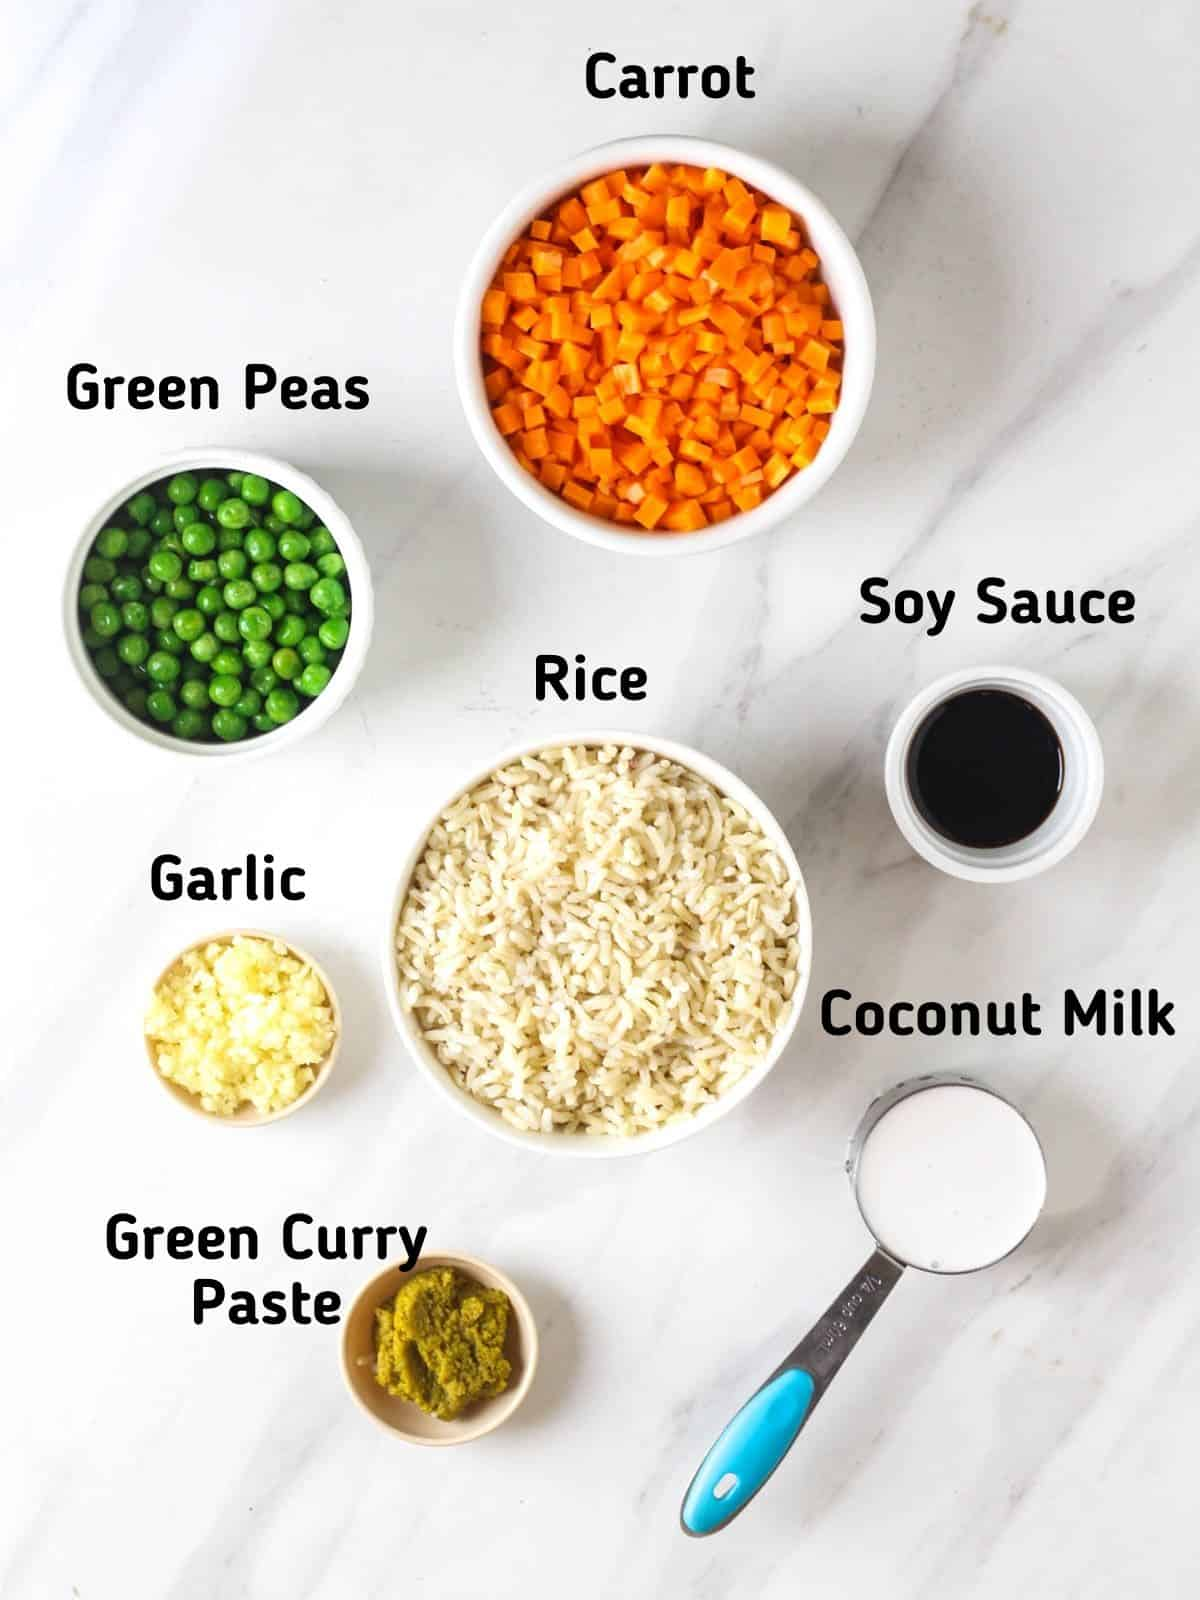 Ingredients needed like green peas, carrot, rice, garlic, green curry paste, coconut milk and soy sauce.